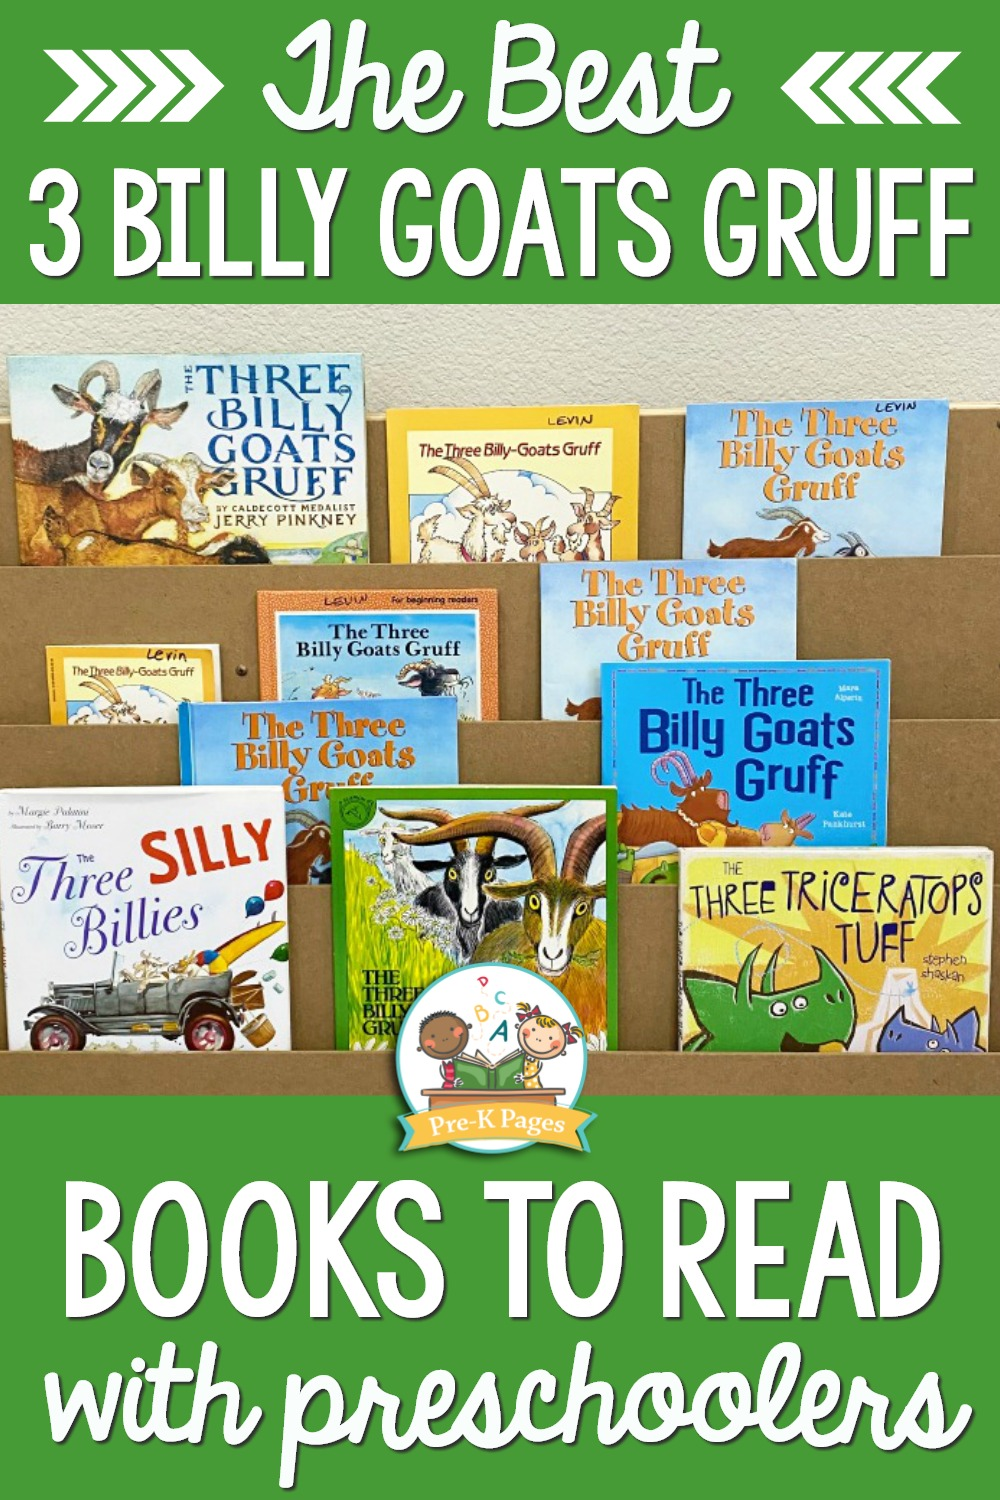 Best Billy Goats Gruff Books for Preschool